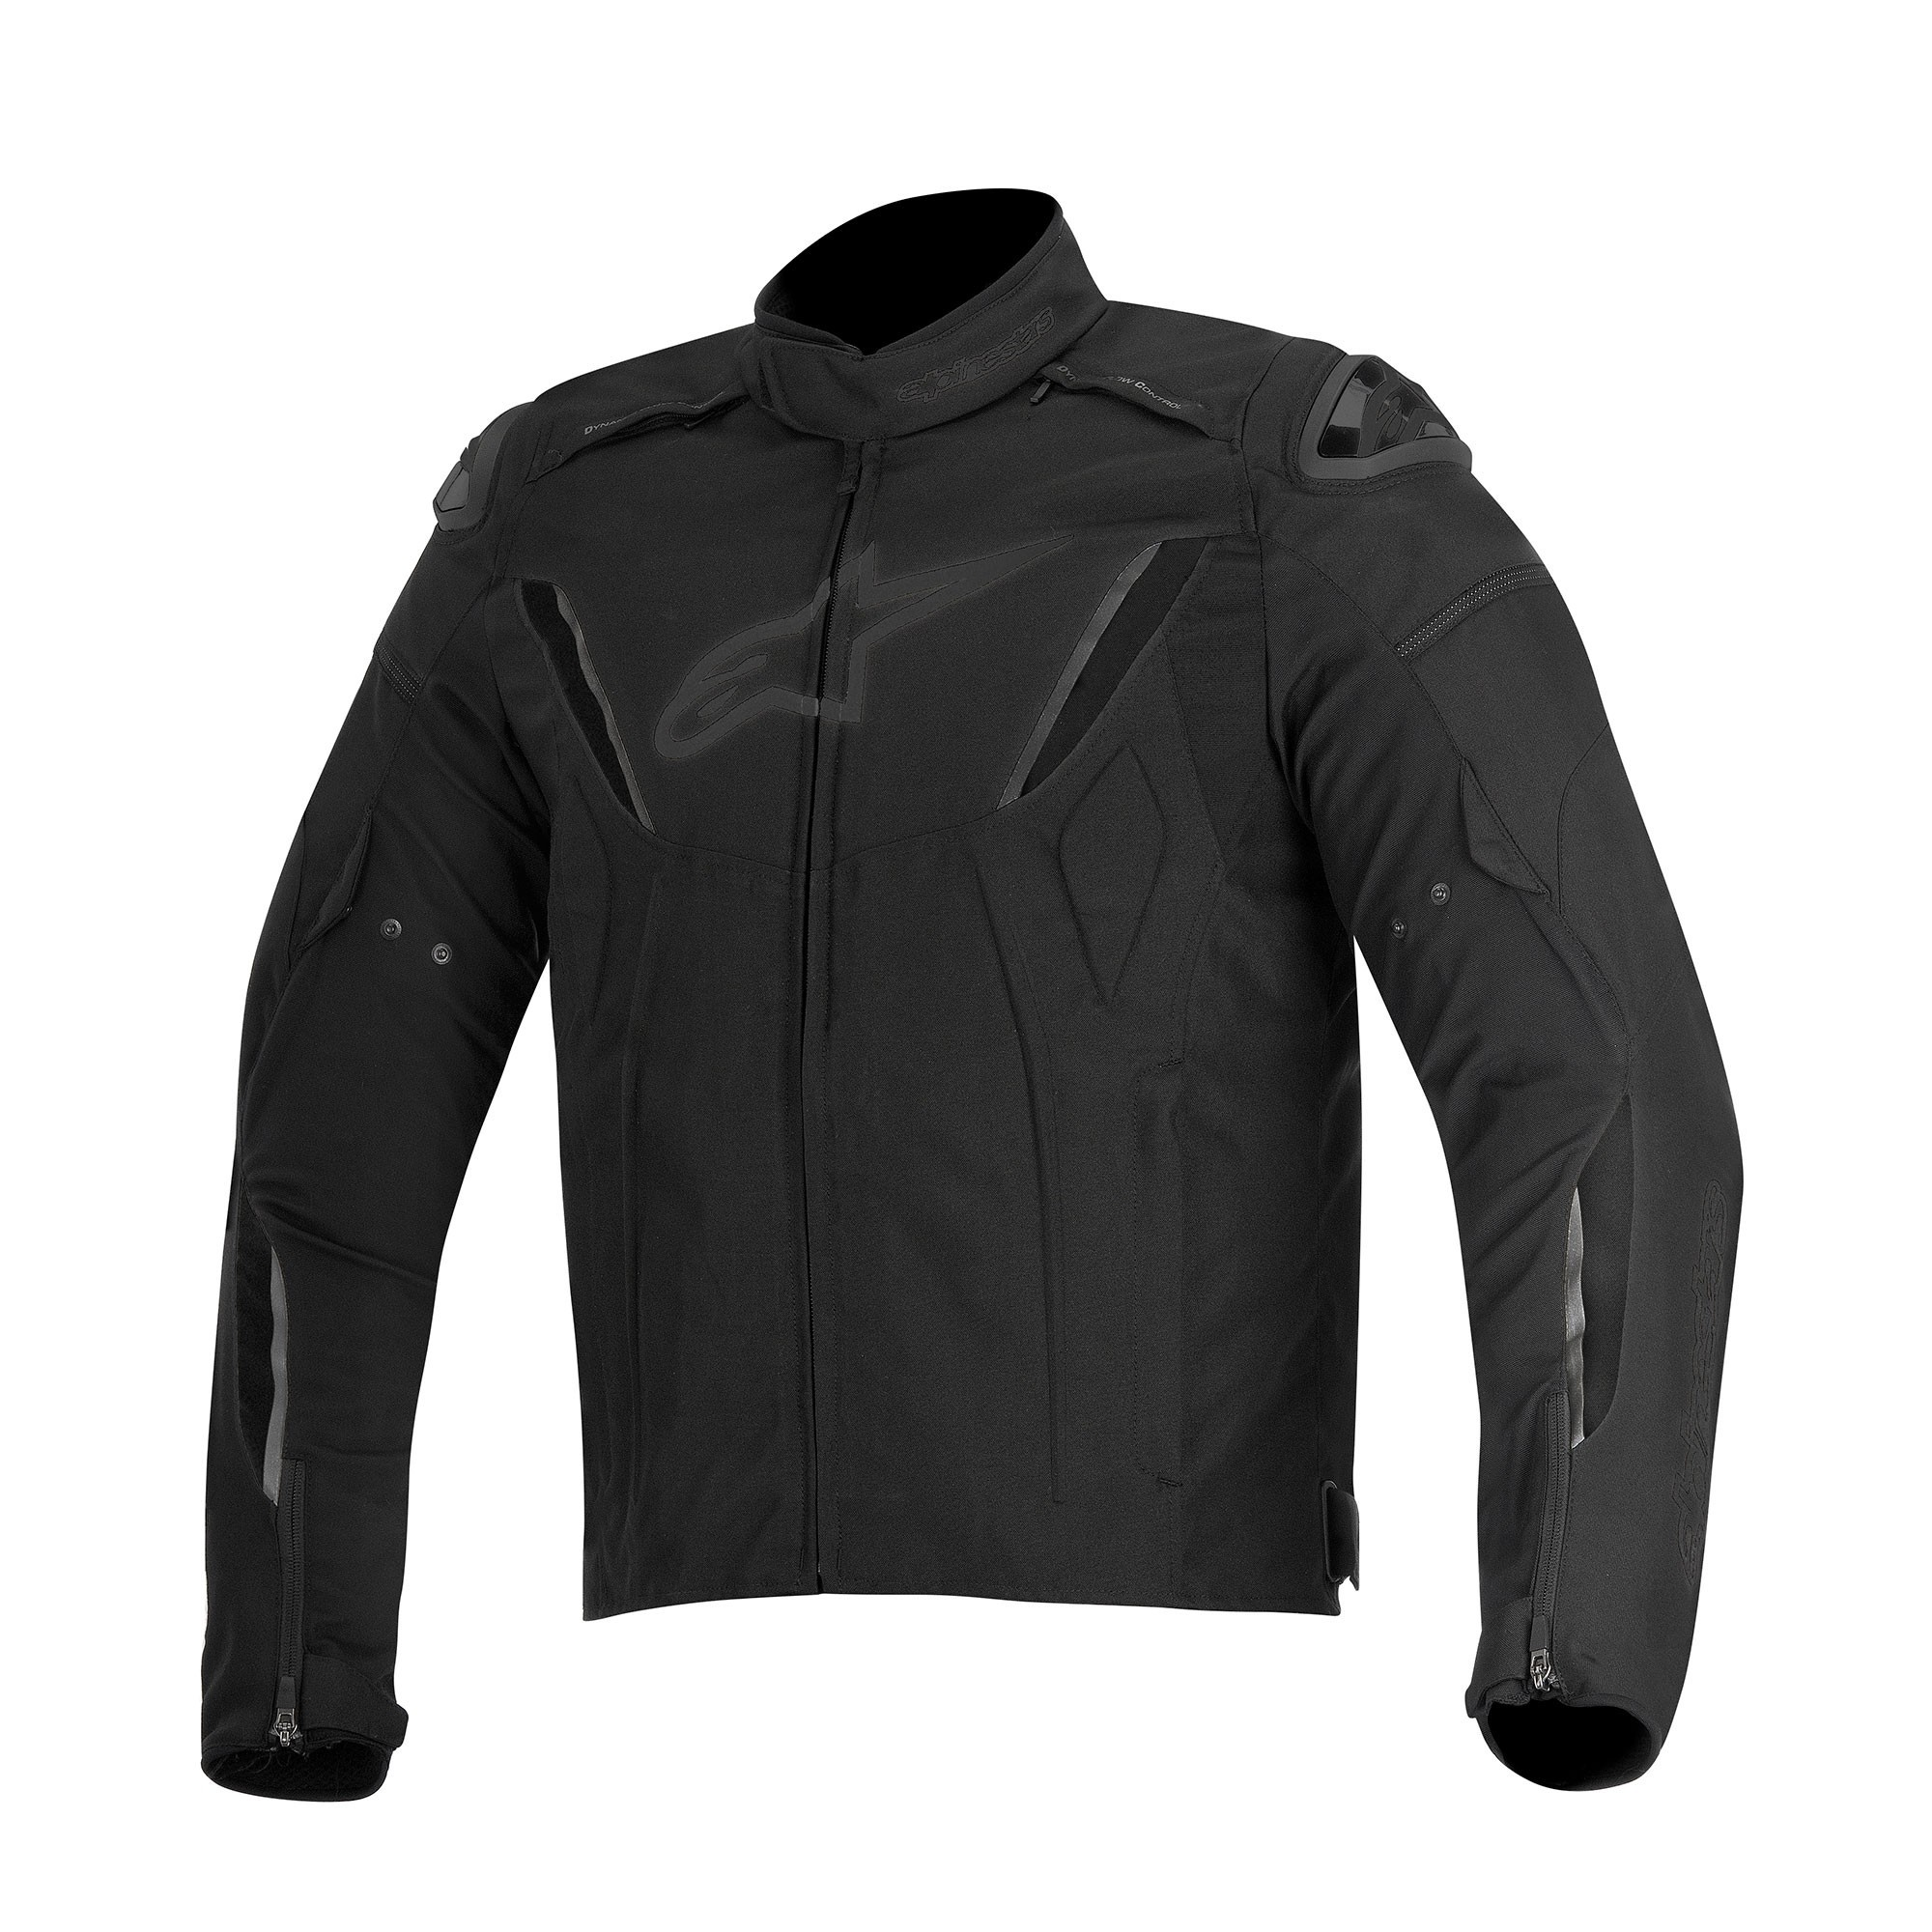 tgp-r-wp_jacket_black_1_1_1.jpg